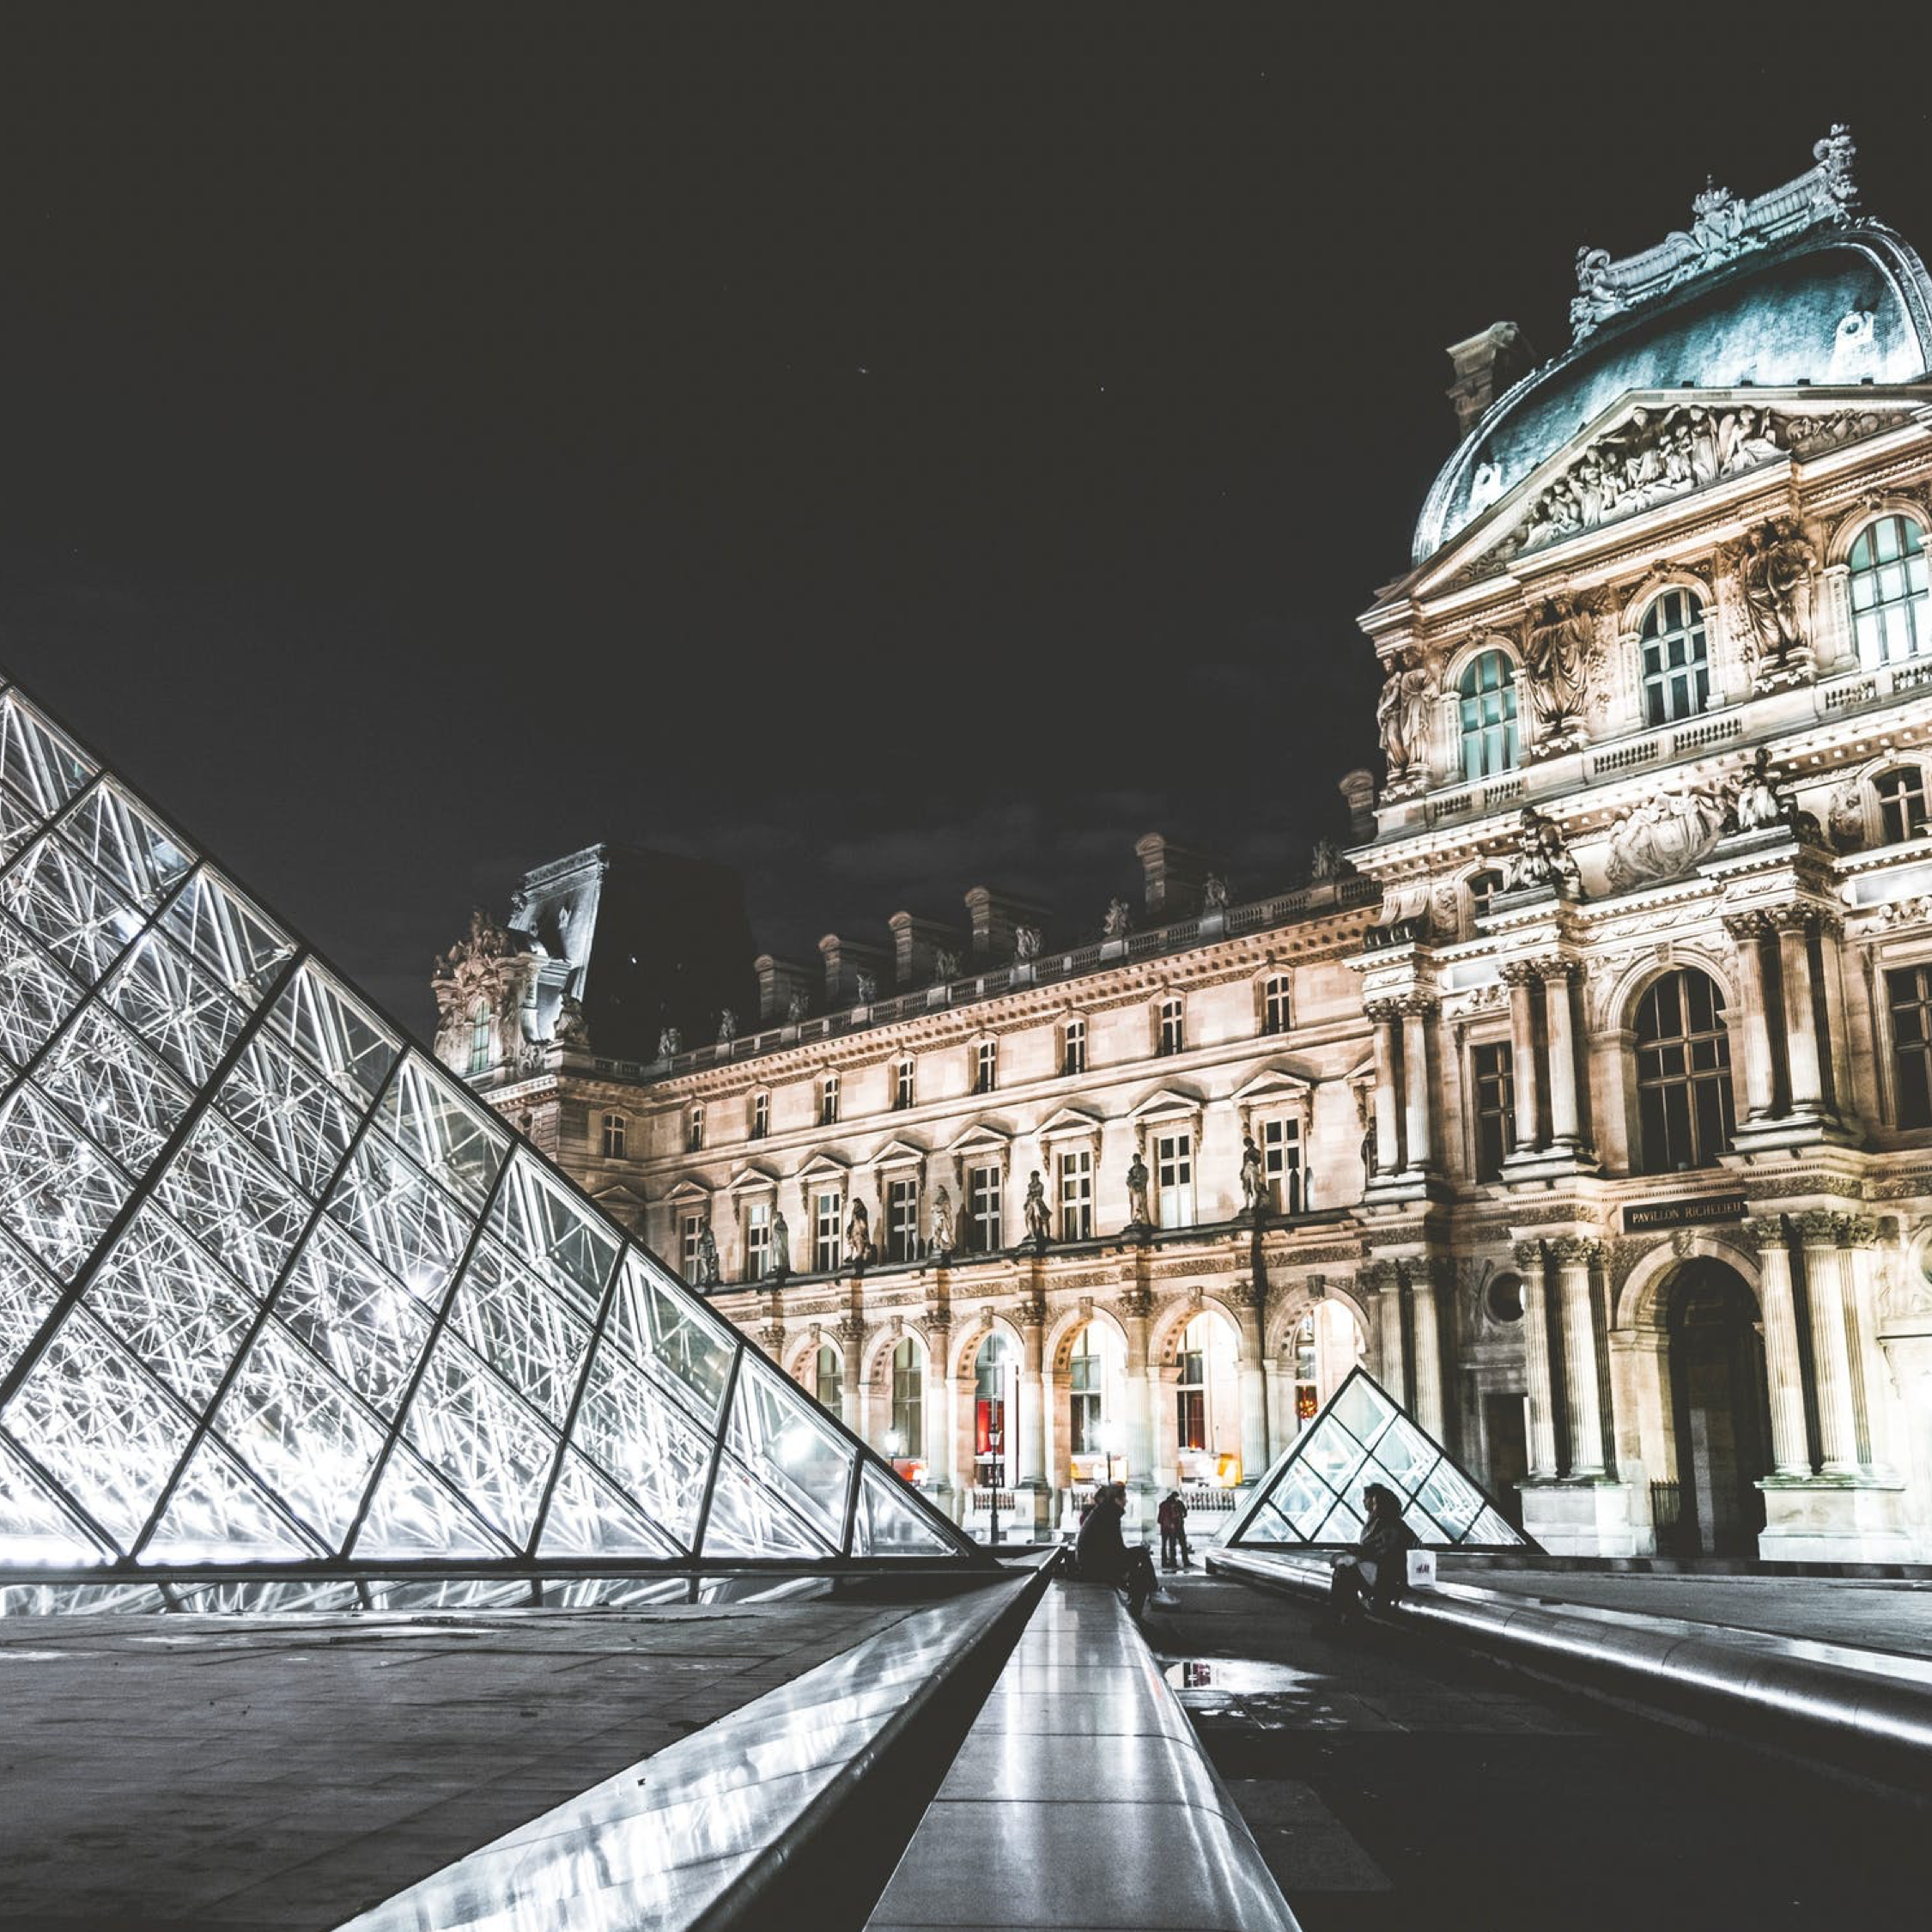 louvre & tuileries - In this tour we not only discover the magnificent Louvre Palace and Tuileries gardens, but we also learn about the history of the French monarchy, the events that led to their downfall, and the rise of that most famous Frenchman of all: Emperor Napoleon! Join Bernard and Katharine for this fantastic overview of 15th-19th century France!Duration: 40 minutesDistance: 2 kmOpening hours: 7.00am – 21.00pmBest time to visit: Before 11amEntrance: Free